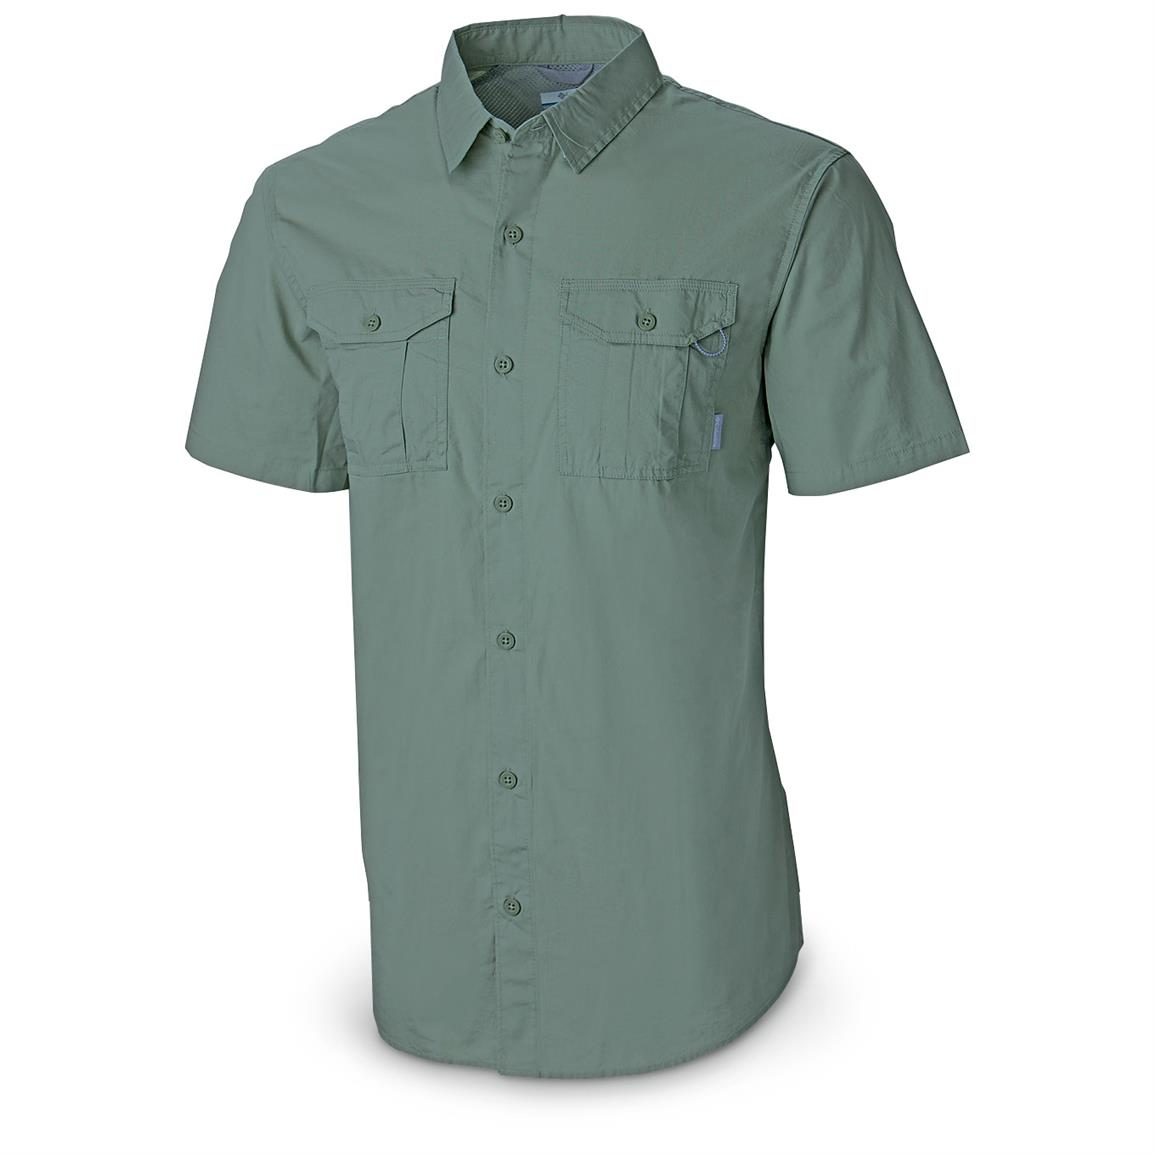 Columbia Men's Pine Park Short-sleeve Cotton Shirt, Gemstone